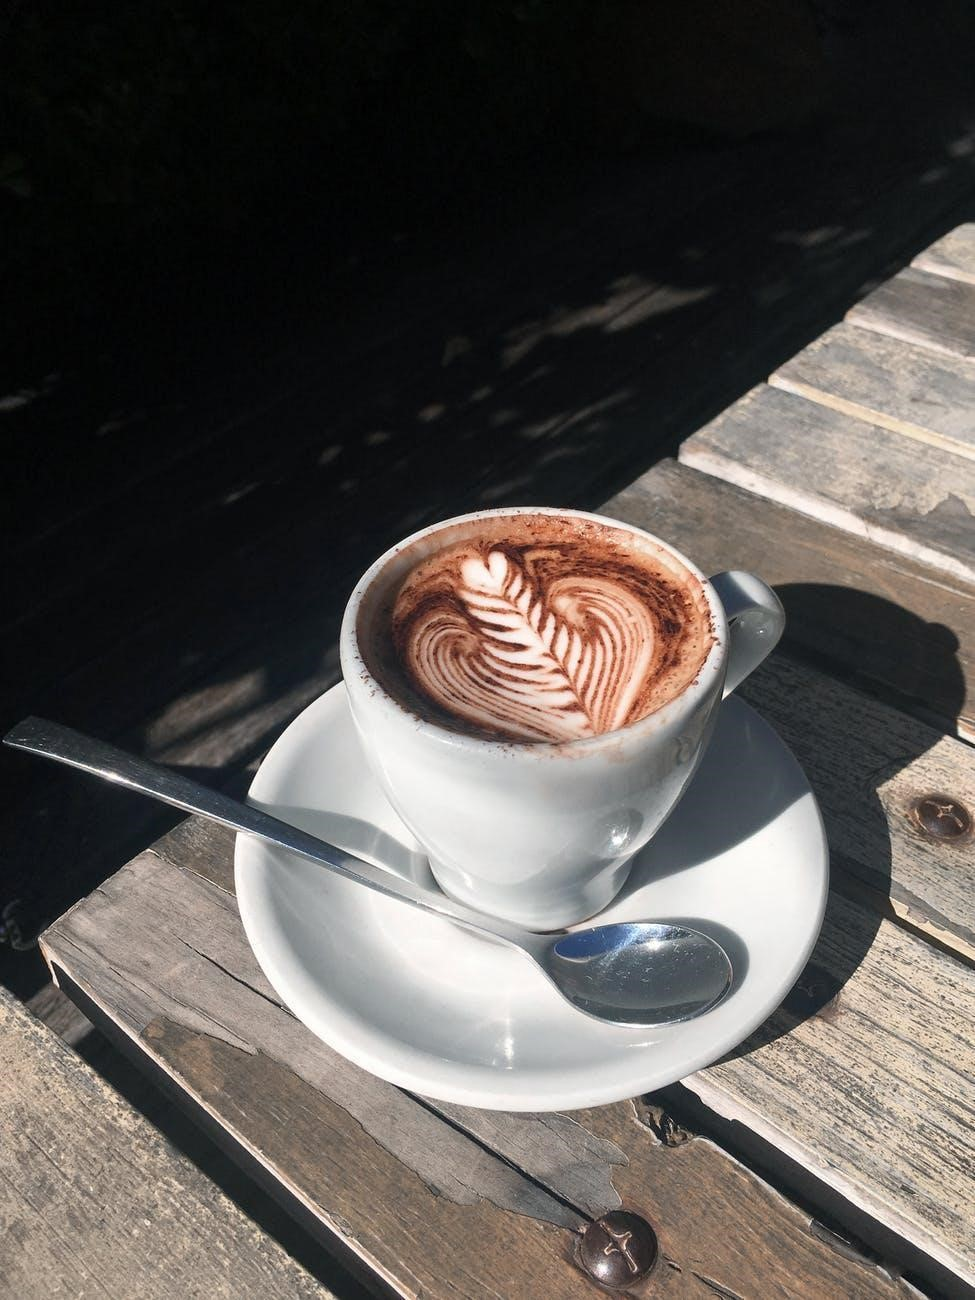 Cappuccino with a chocolate design on top